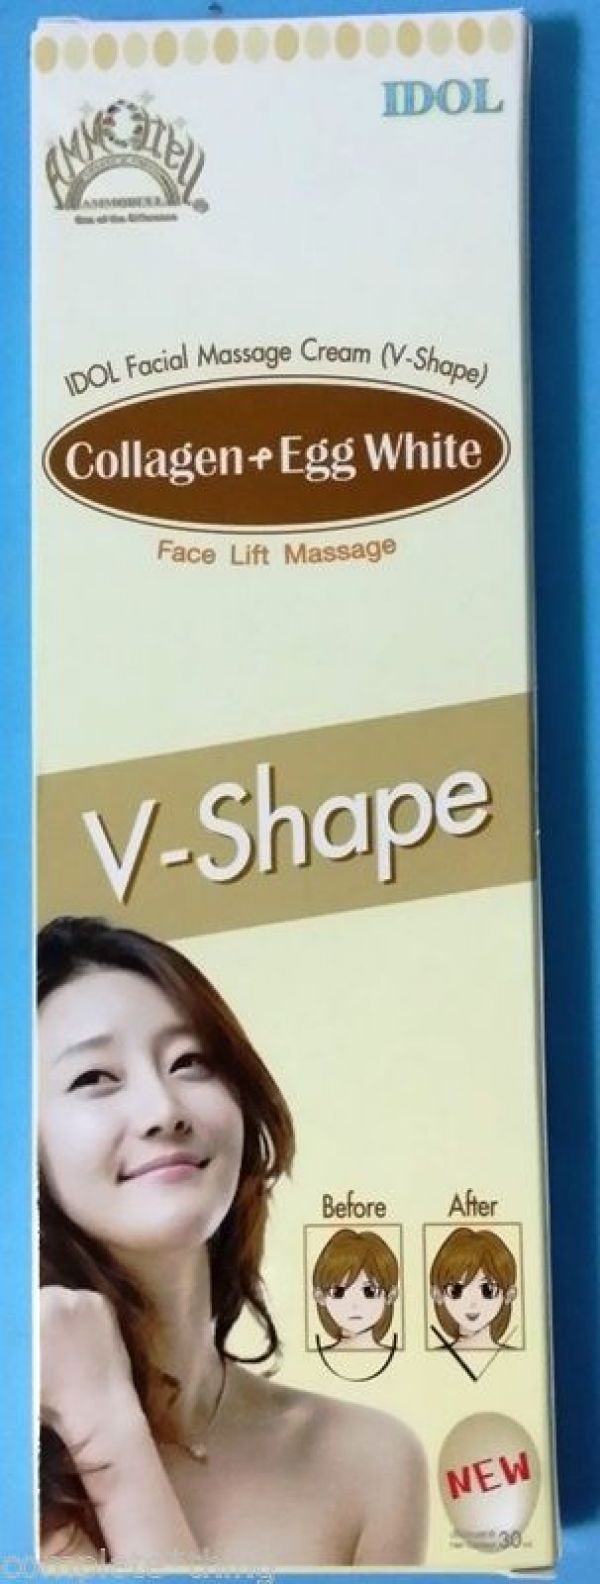 Idol Facial Maccage Cream (V-Shape) 30ml